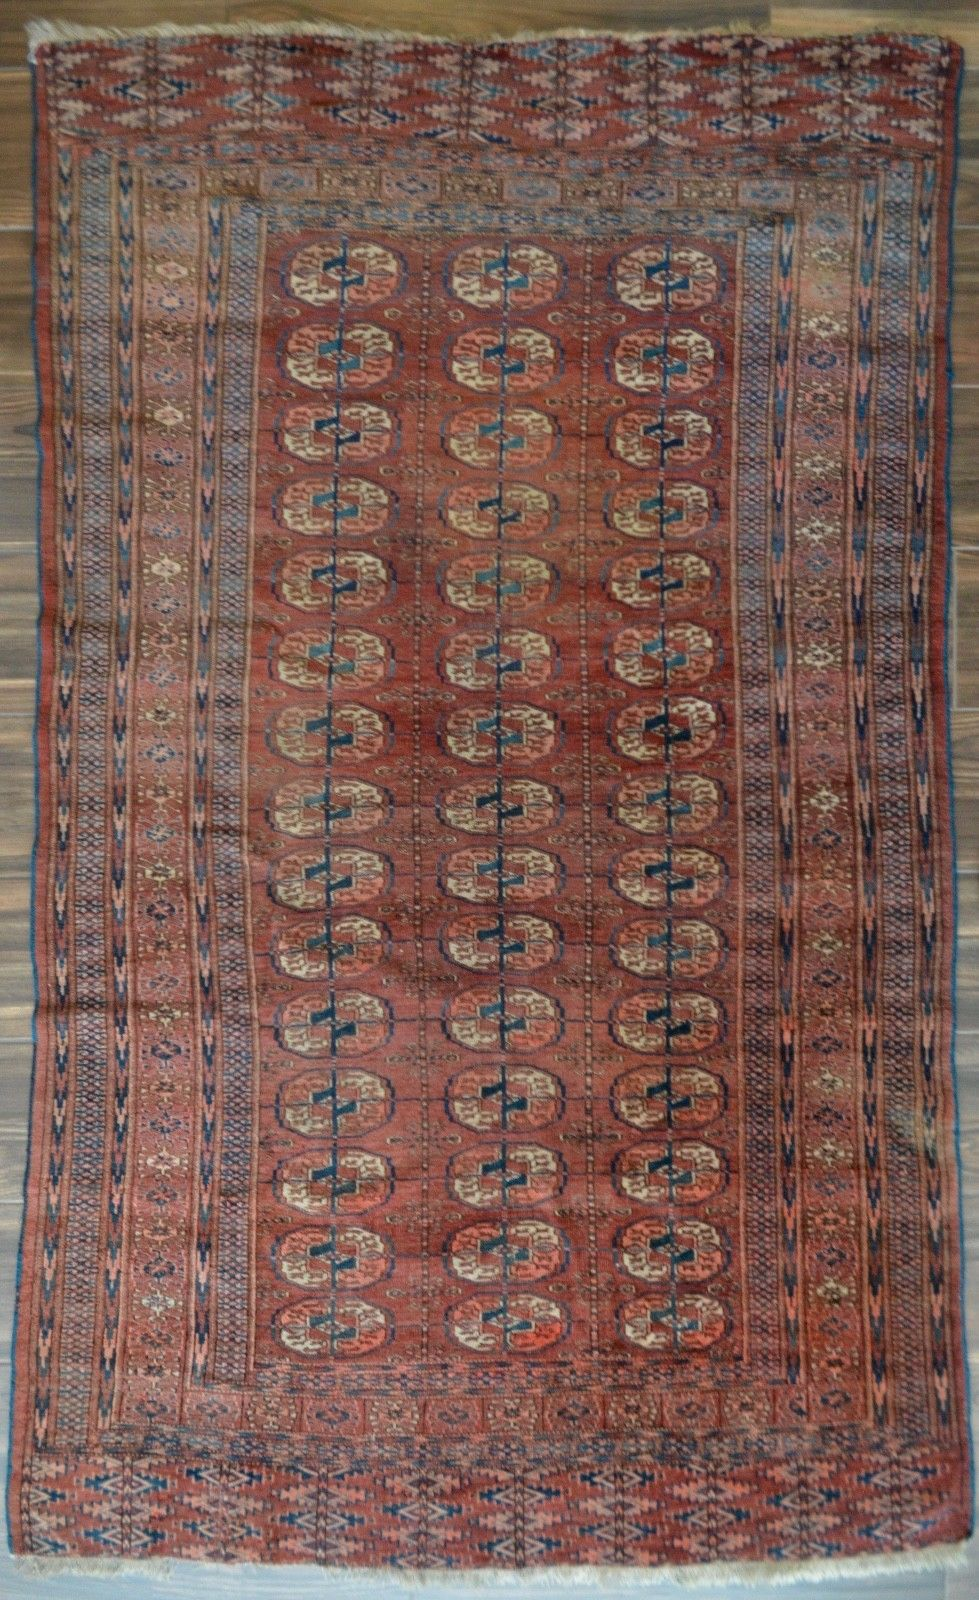 Antique Tekke Rug - 5' x 7'11